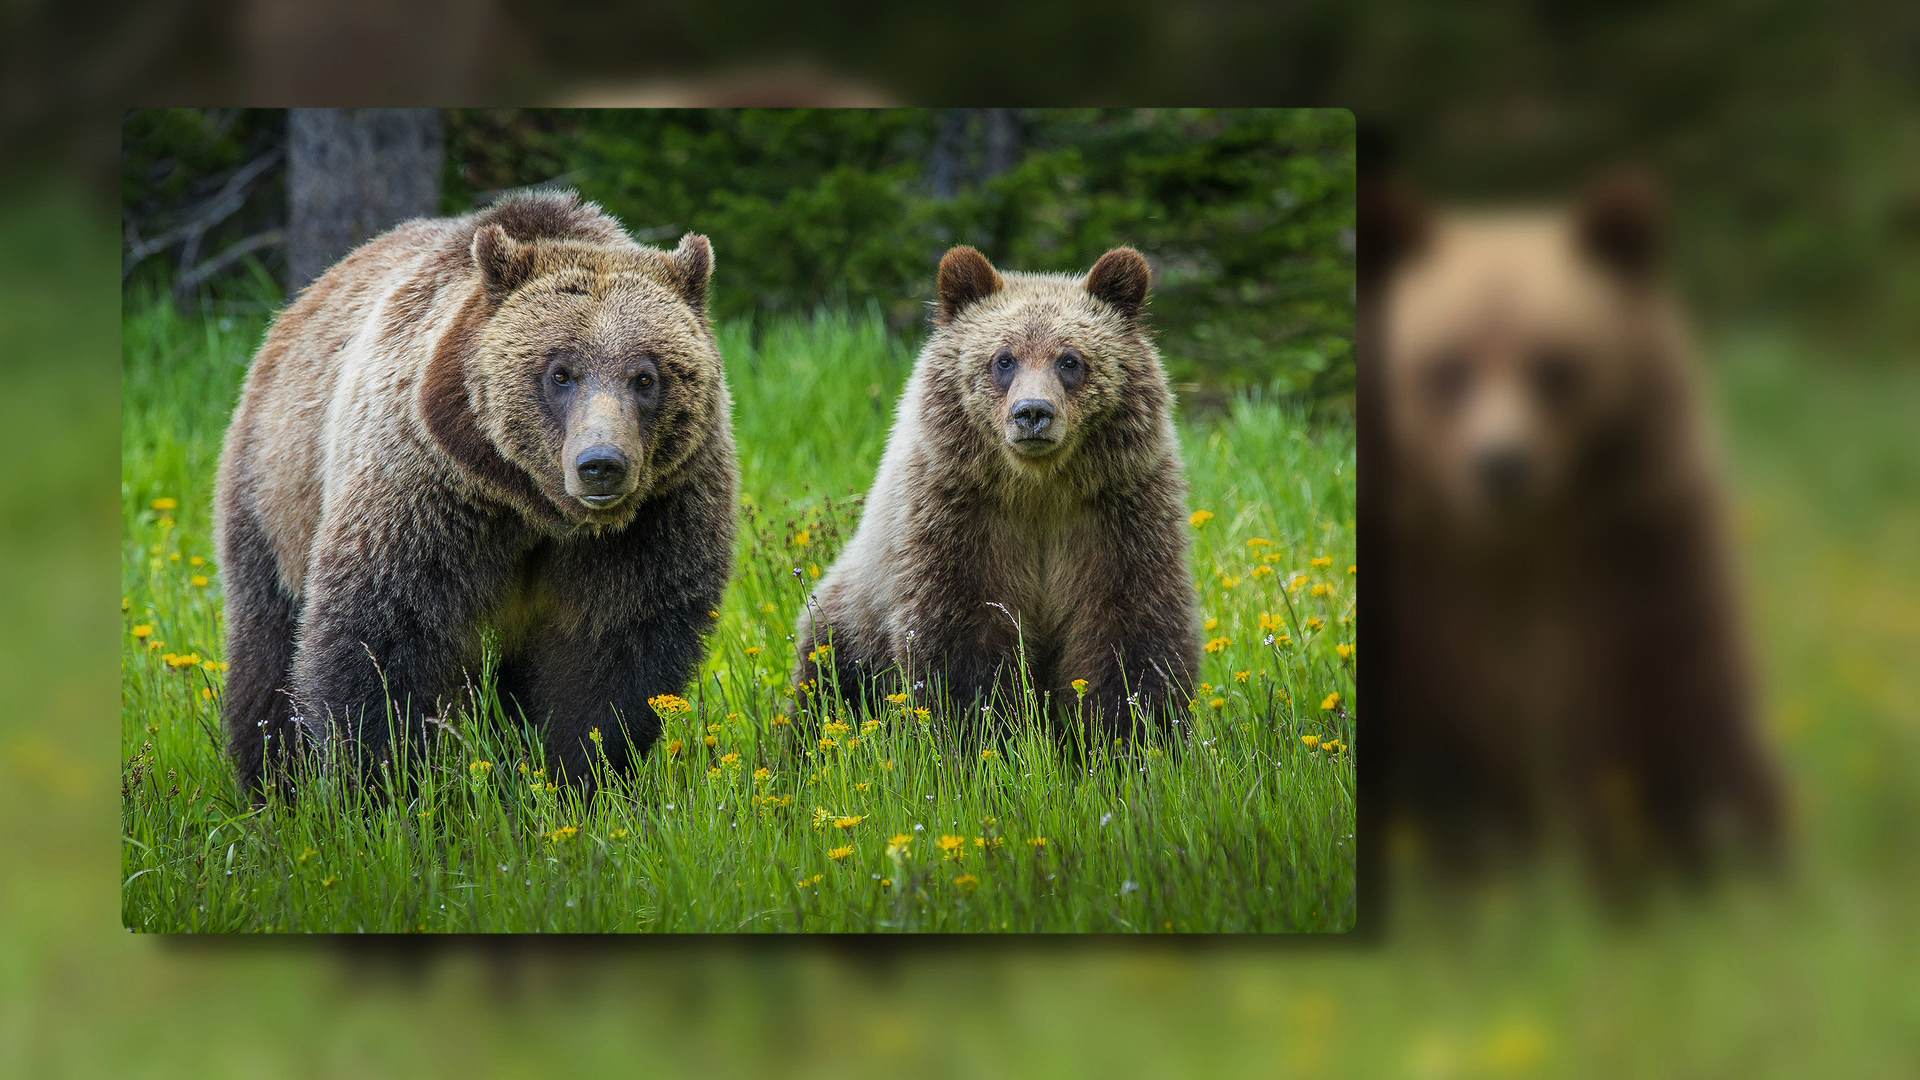 Photographing Grizzly Bears